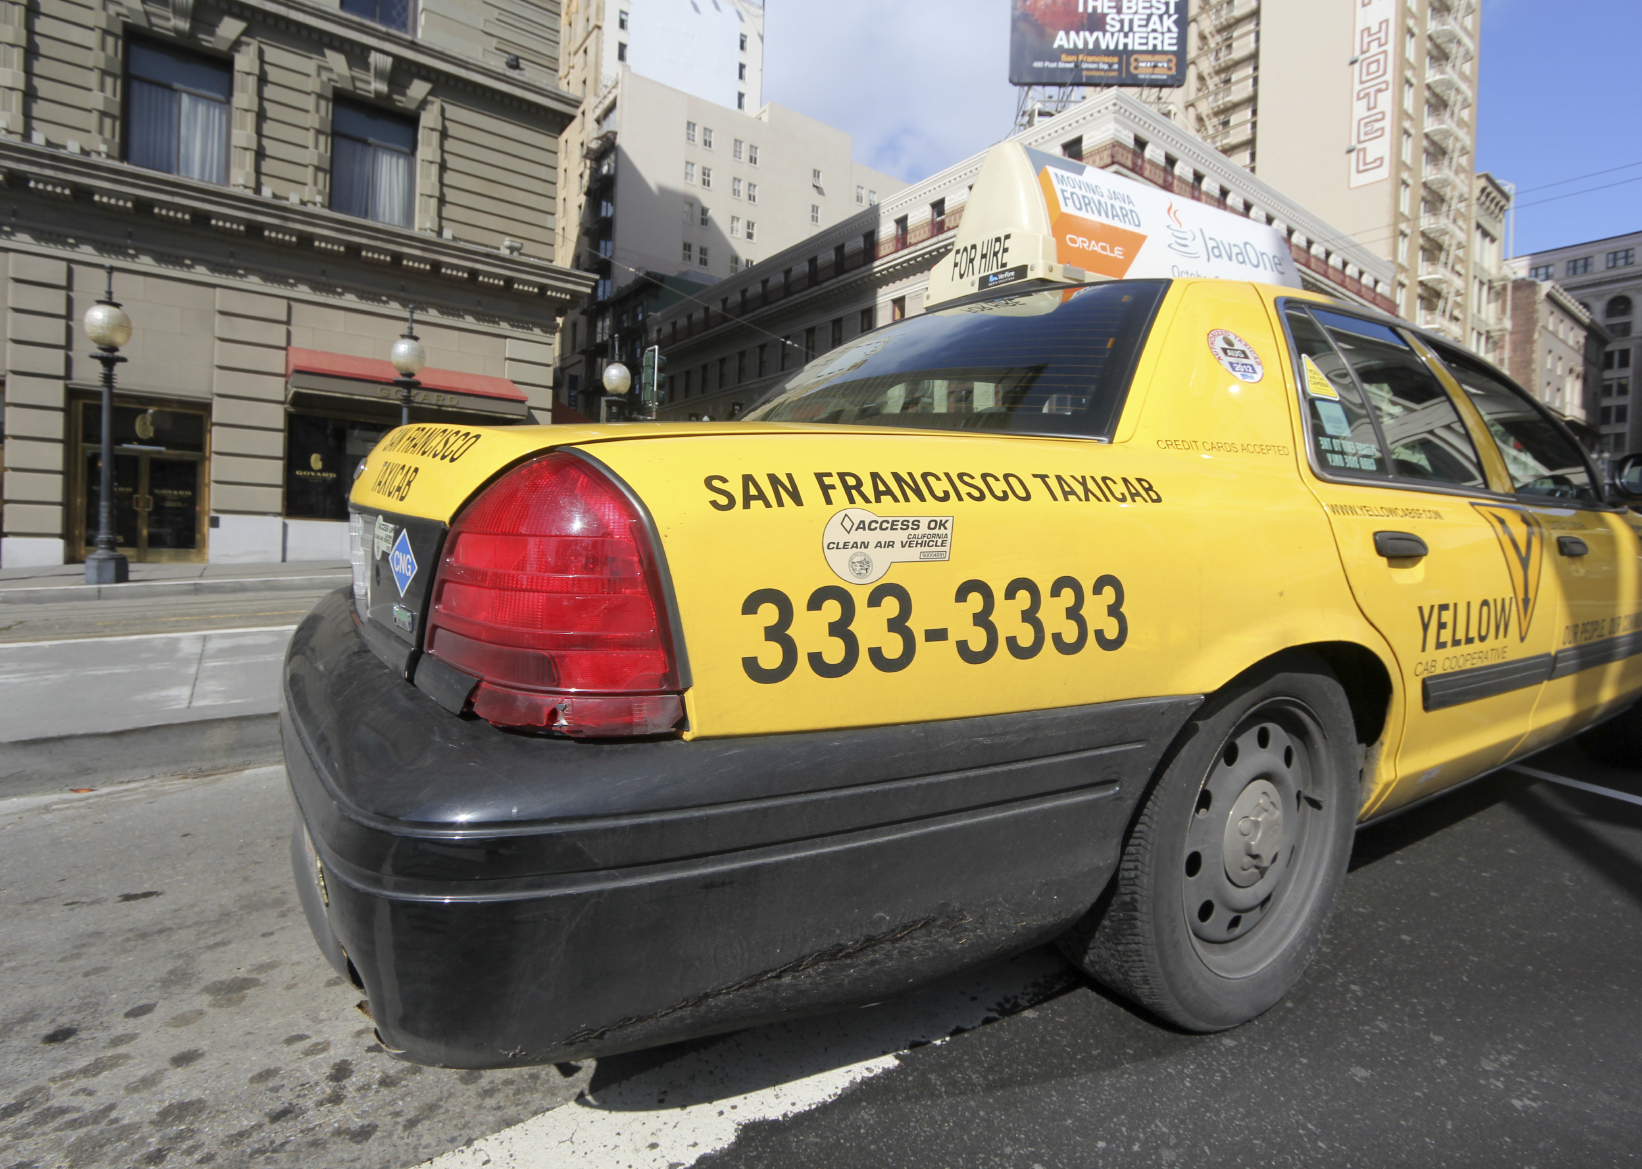 Uber victory as San Francisco taxi co-op files for